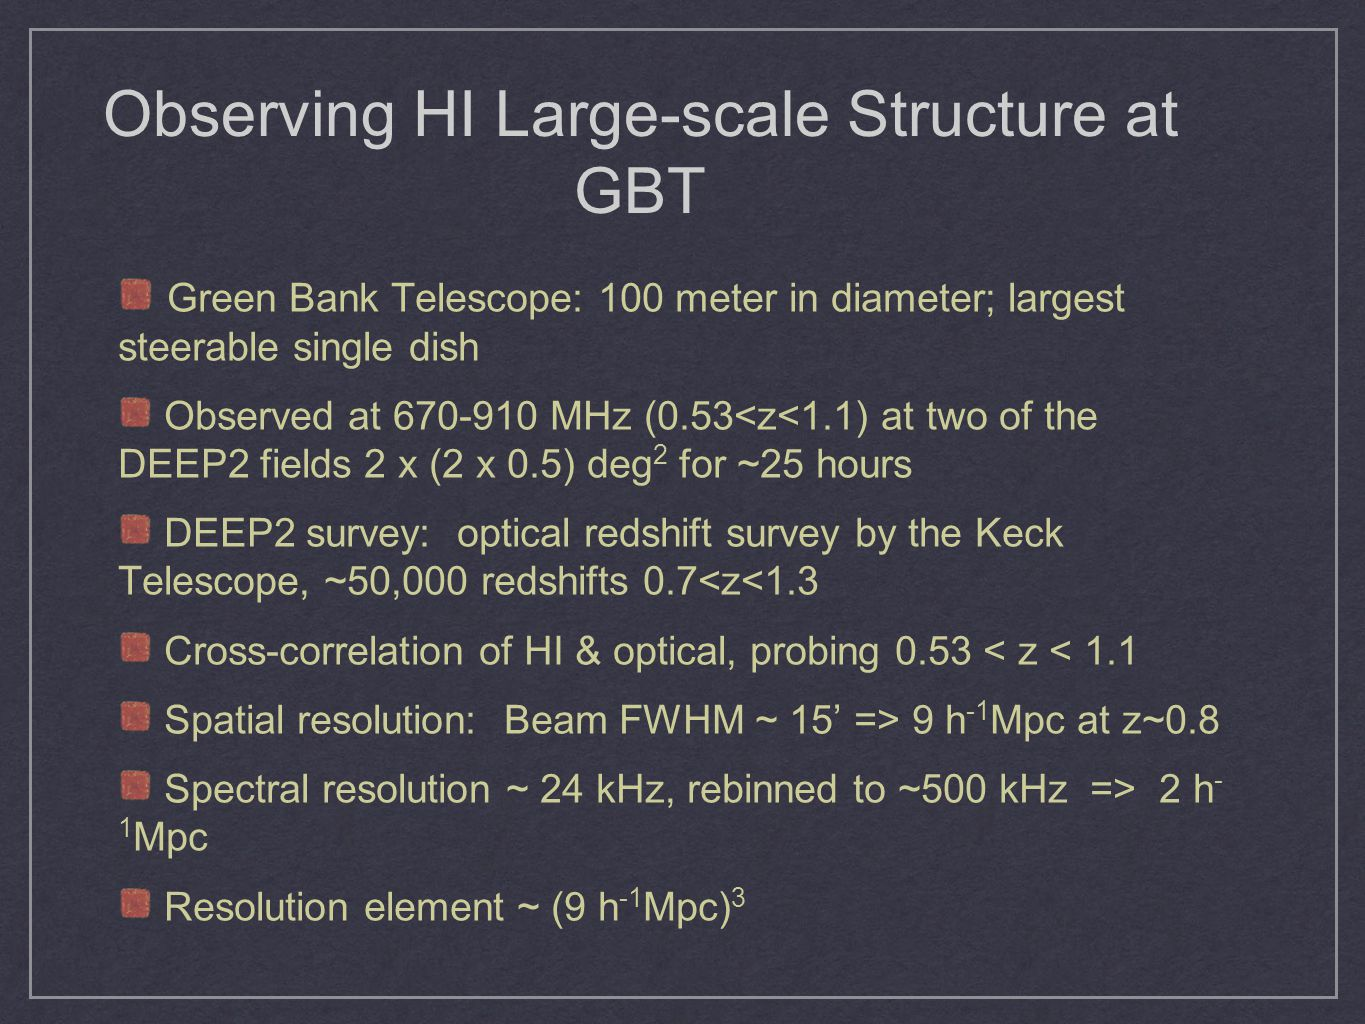 Observing HI Large-scale Structure at GBT